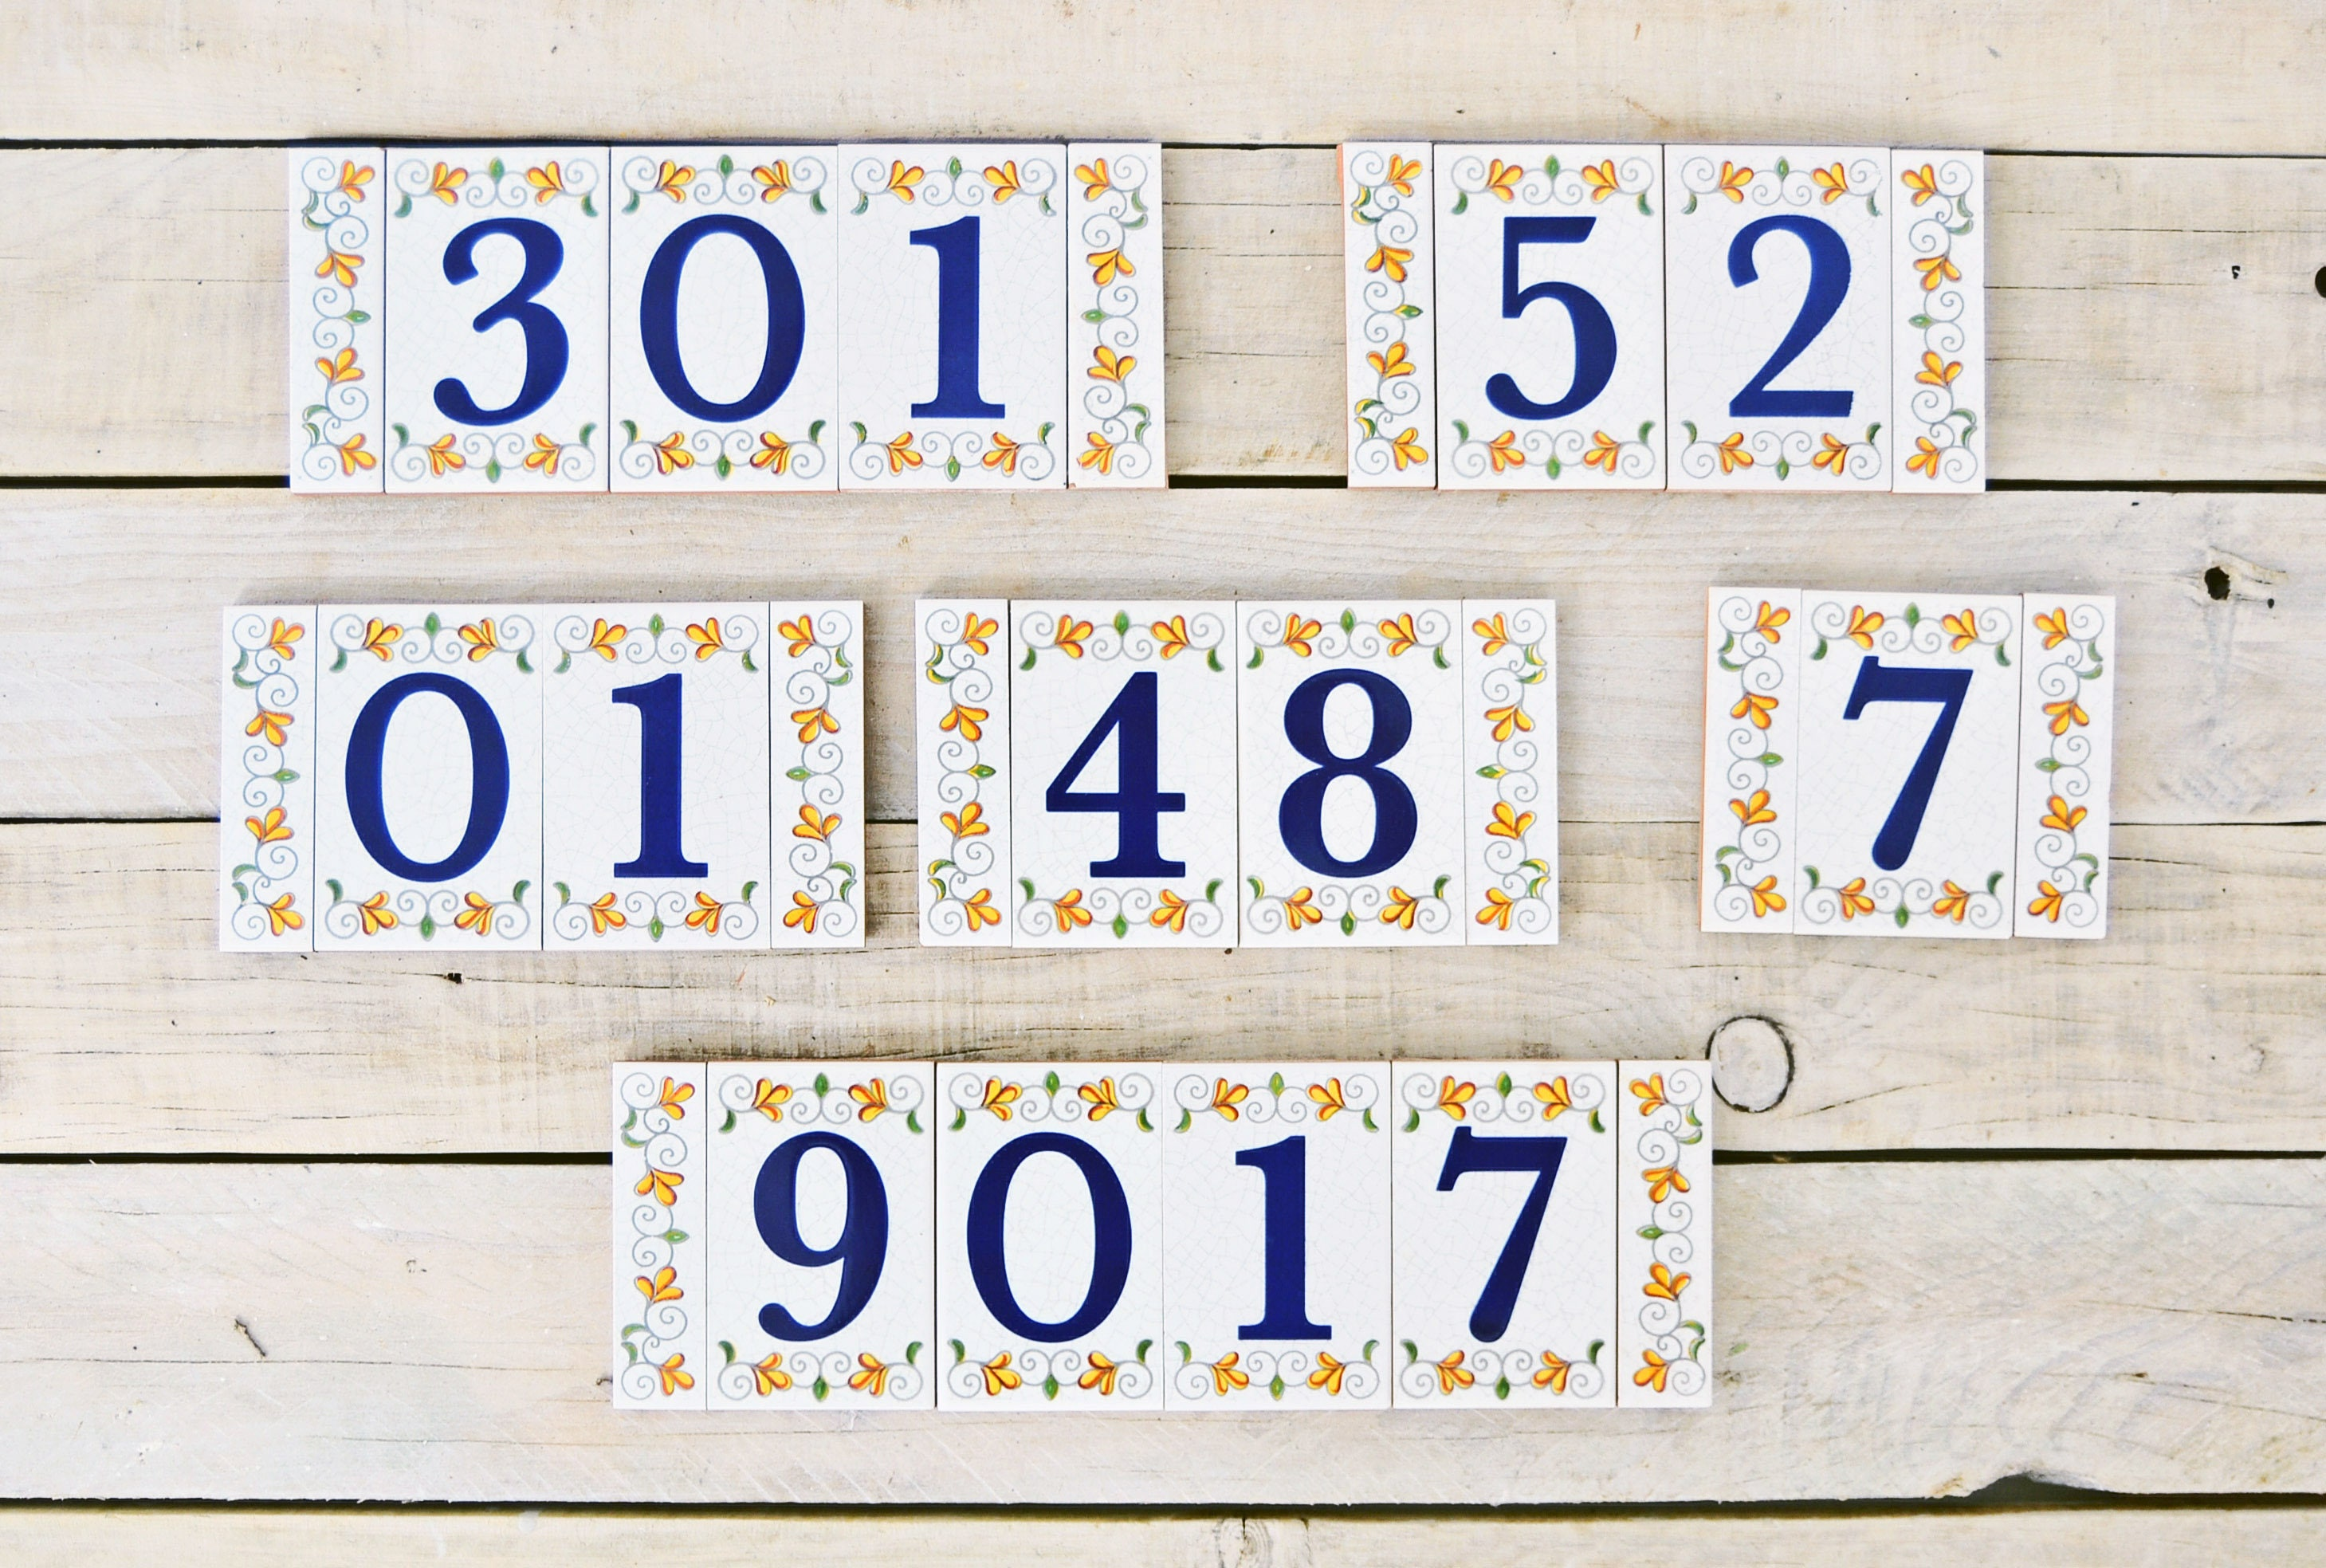 Ceramic tile letters image collections tile flooring design ideas ceramic tile house numbers images tile flooring design ideas ceramic tile house numbers and letters images dailygadgetfo Images